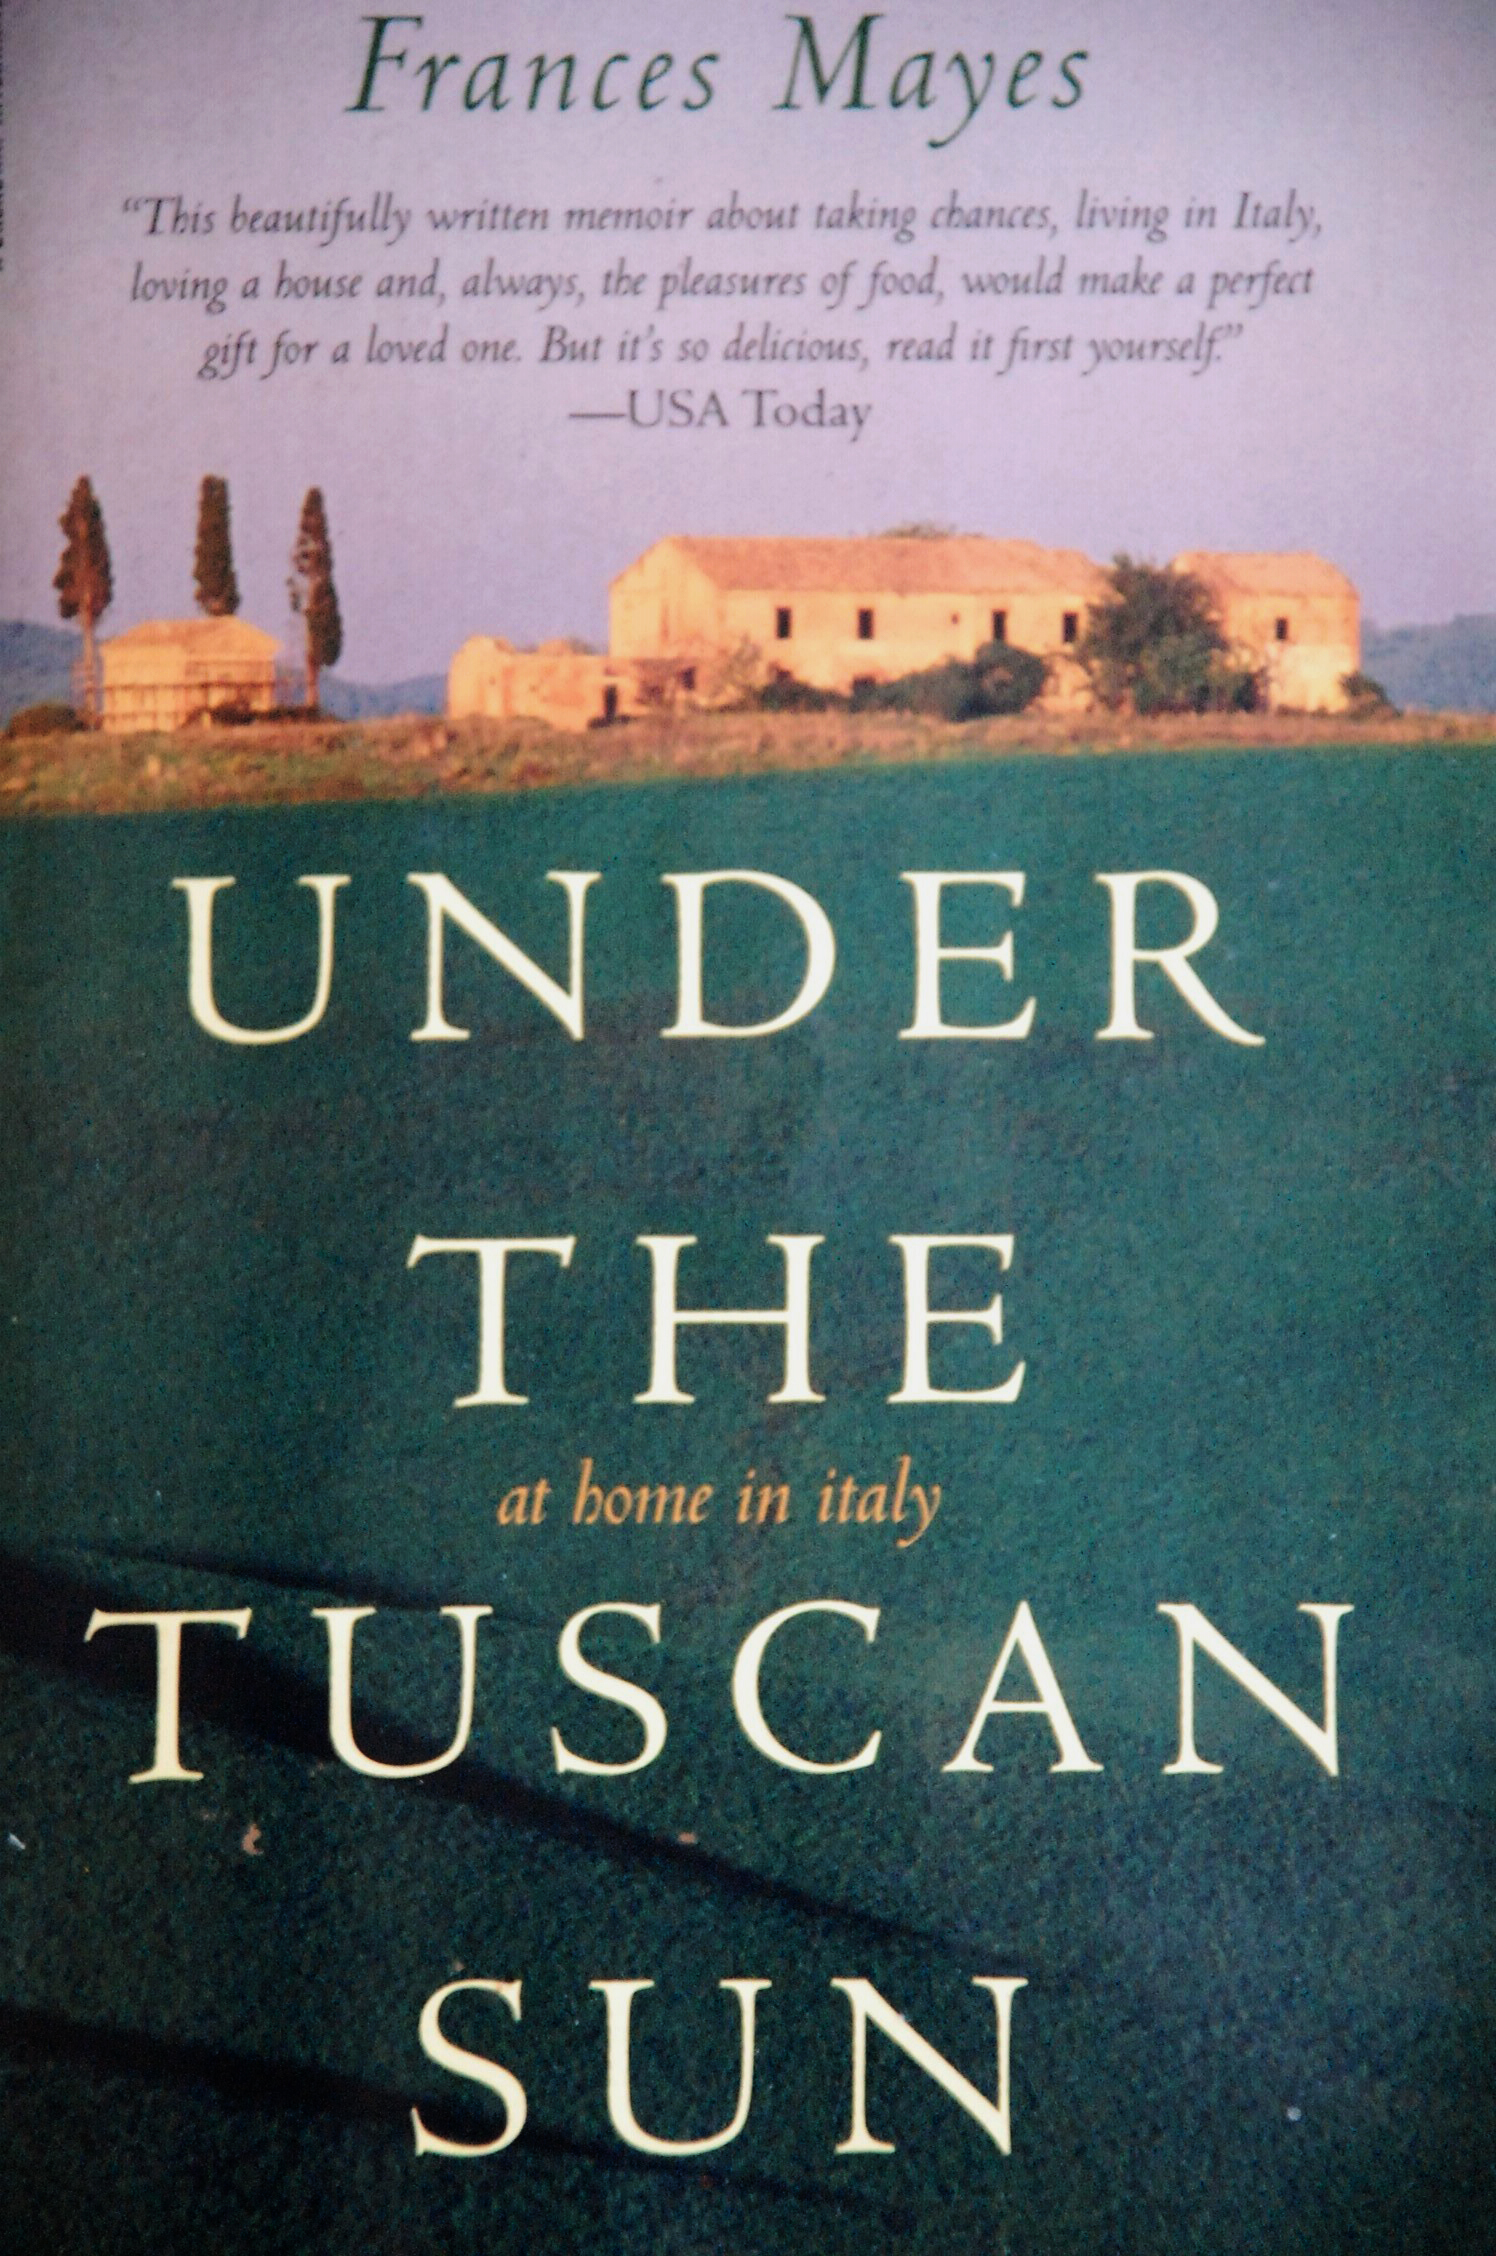 under the tuscan sun essay Movies similar to under the tuscan sun: eat pray love (2010), no reservations (2007), the holiday (2006), shall we dance (2004), letters to juliet (2010), something new (2006), a good year (2006), must love 2 look for them in the presented list save this list to under the tuscan sun (2003.